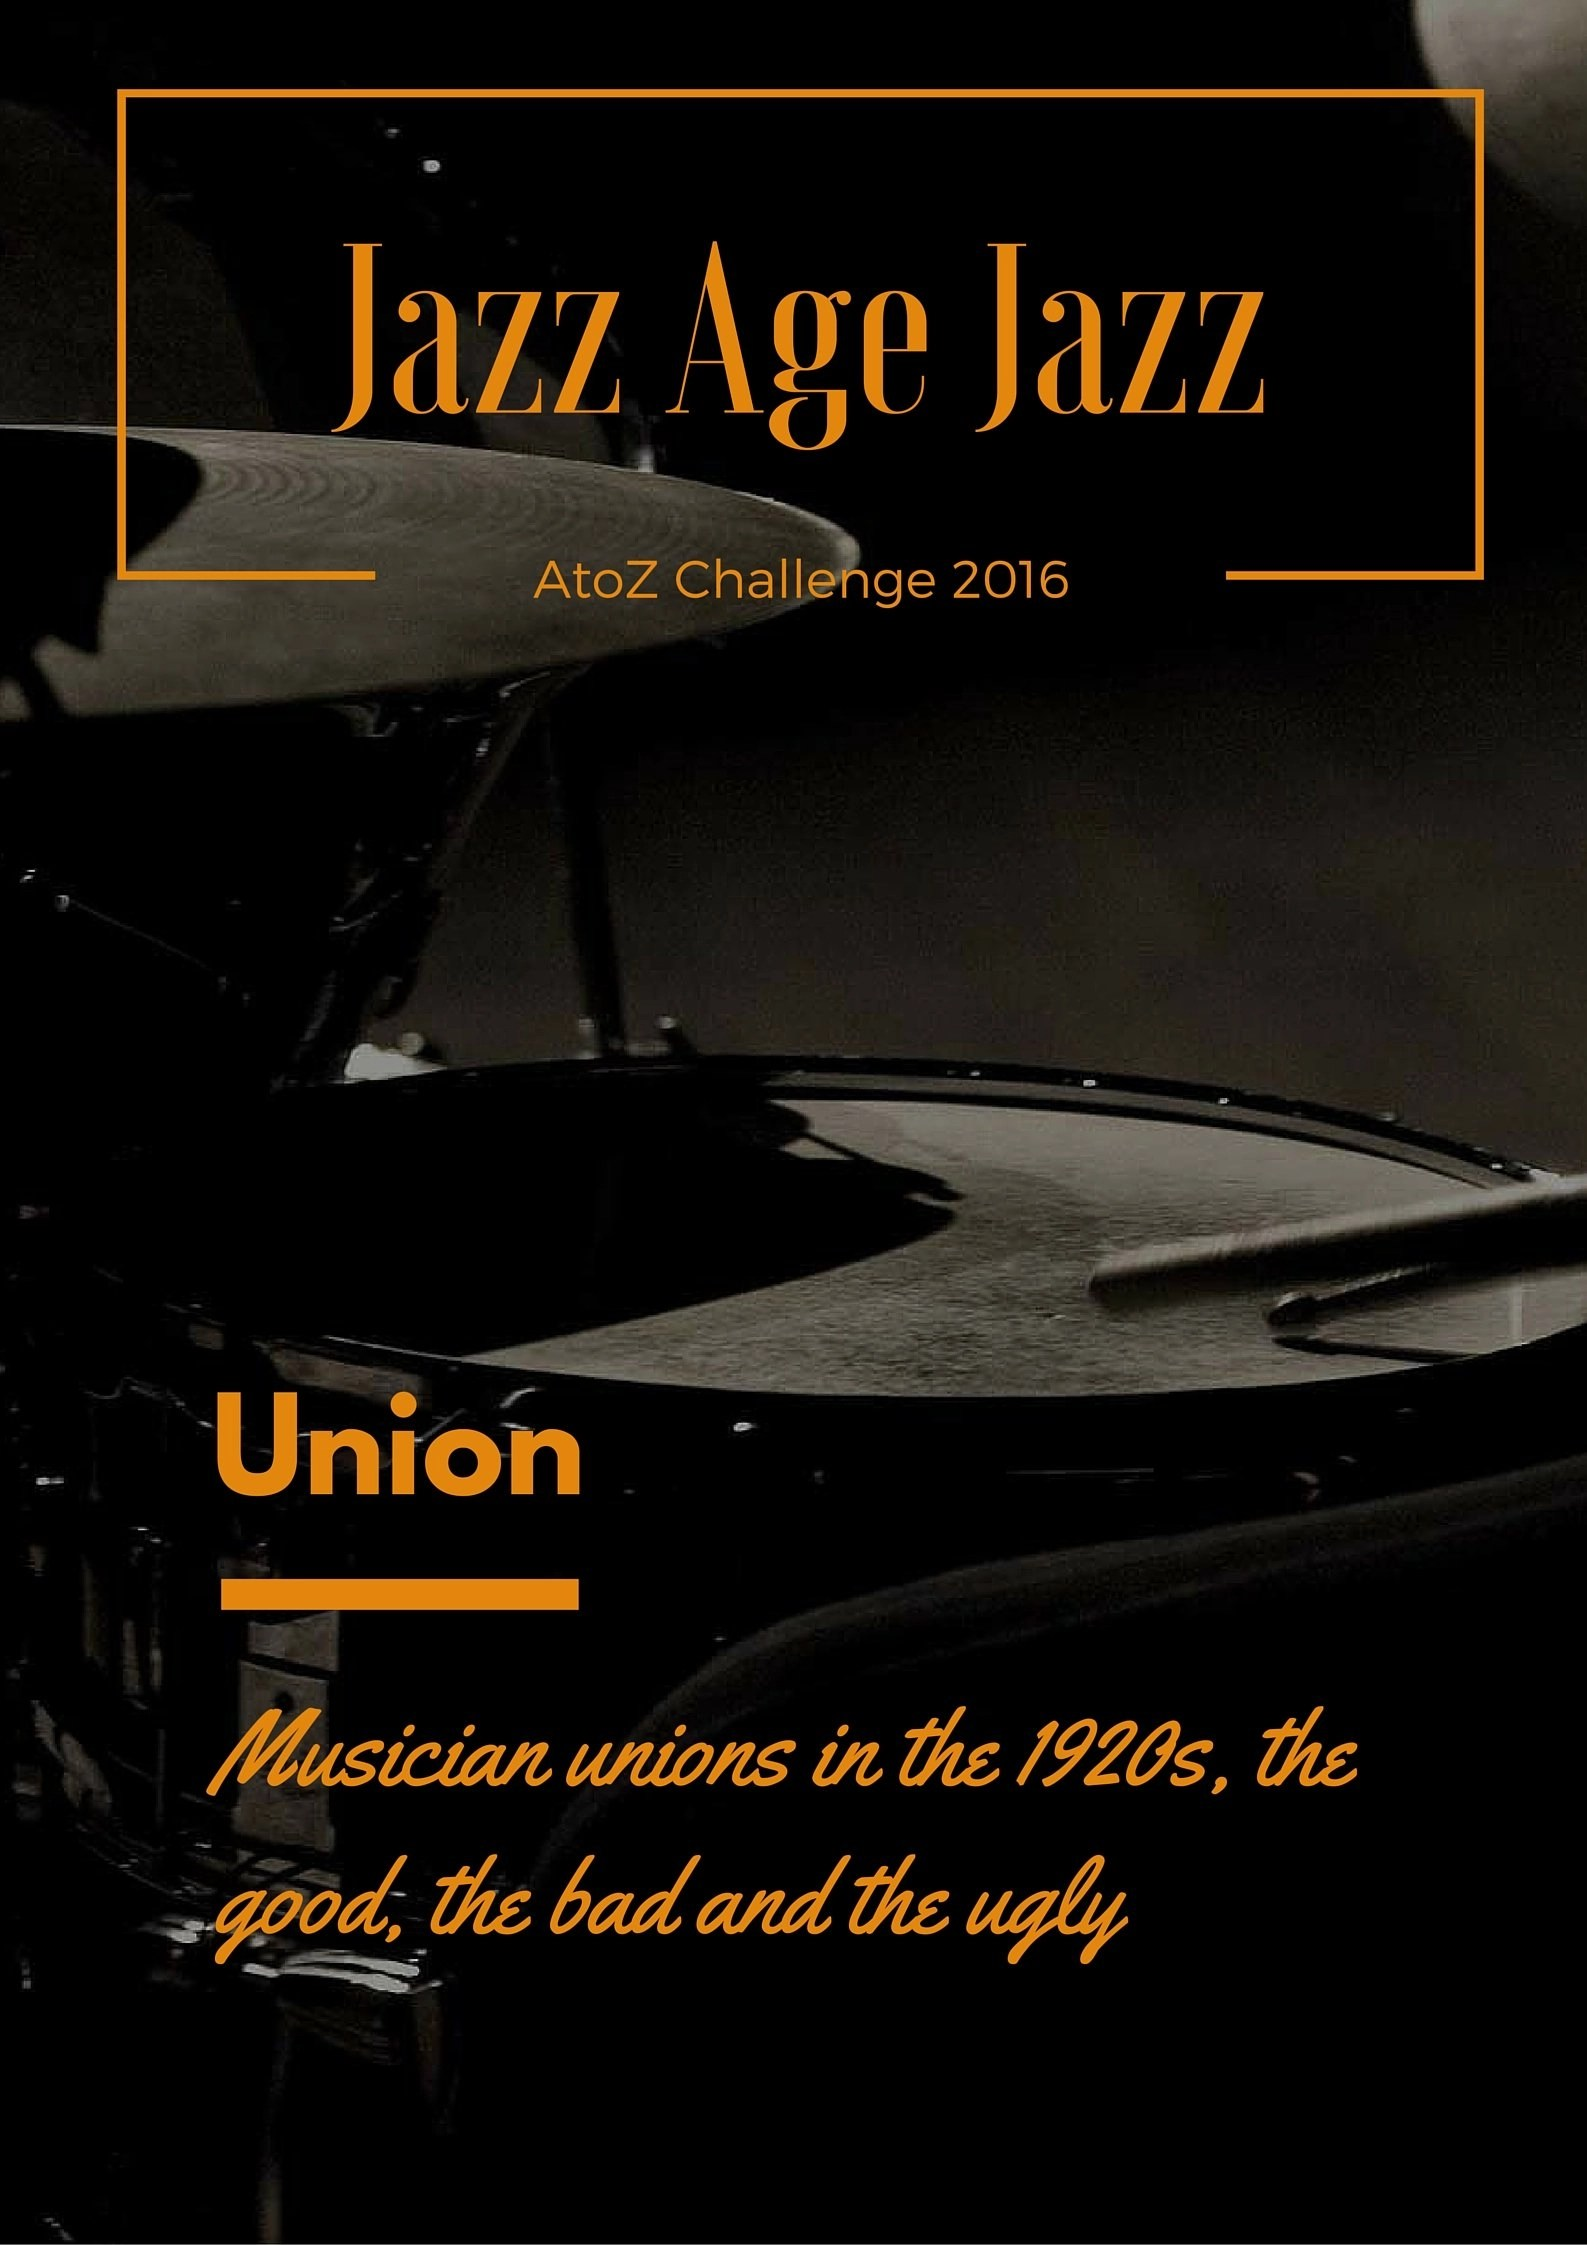 Jazz Age Jazz - Union: musician unions in the 1920s, the good, the bad and the ugly